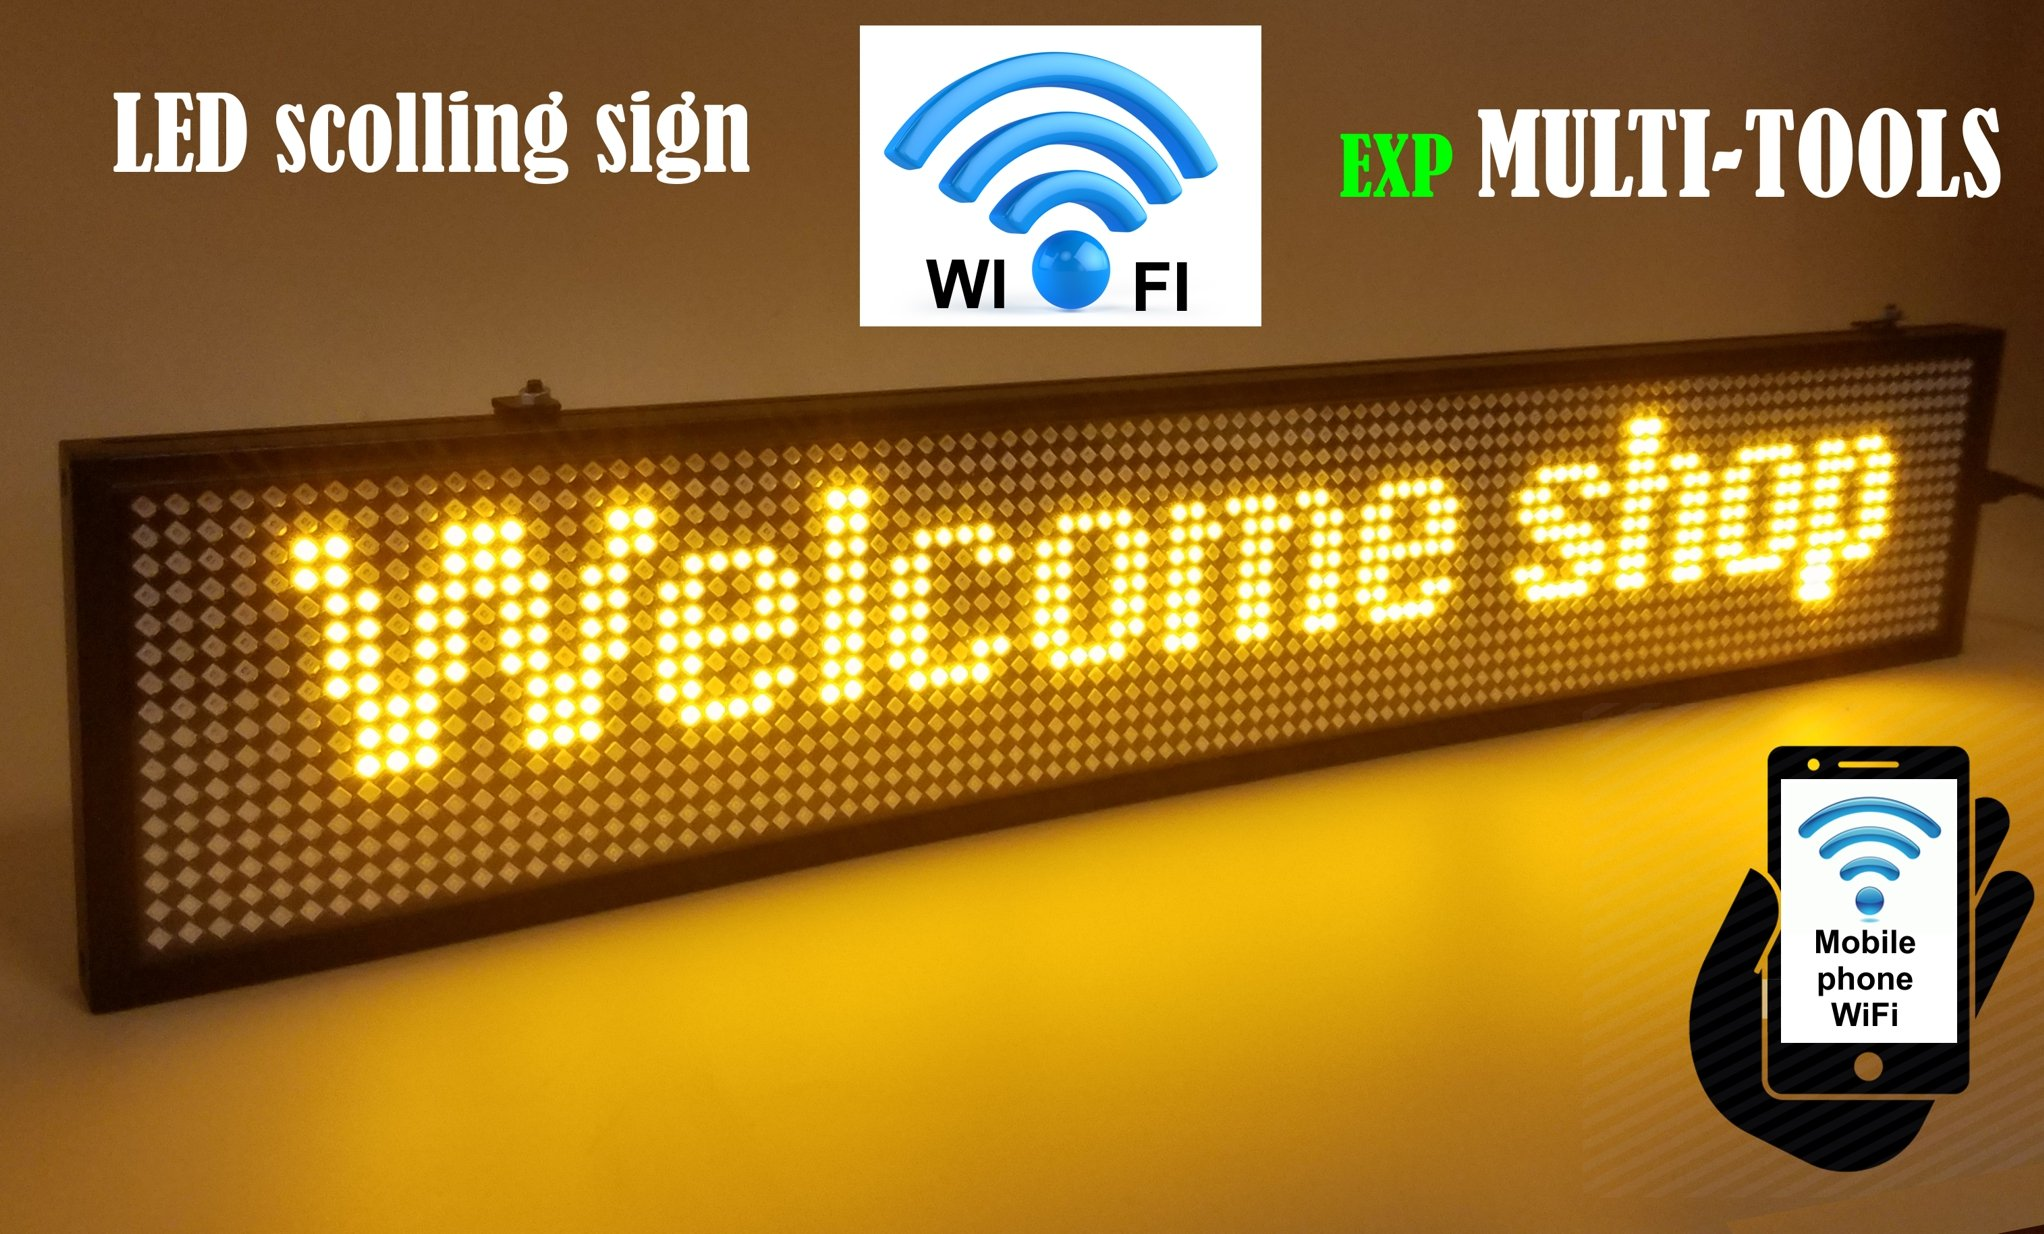 LED Display Yellow Color with WiFi Connection, LED Scrolling Message Sign, Bright and in New Light auminum housing